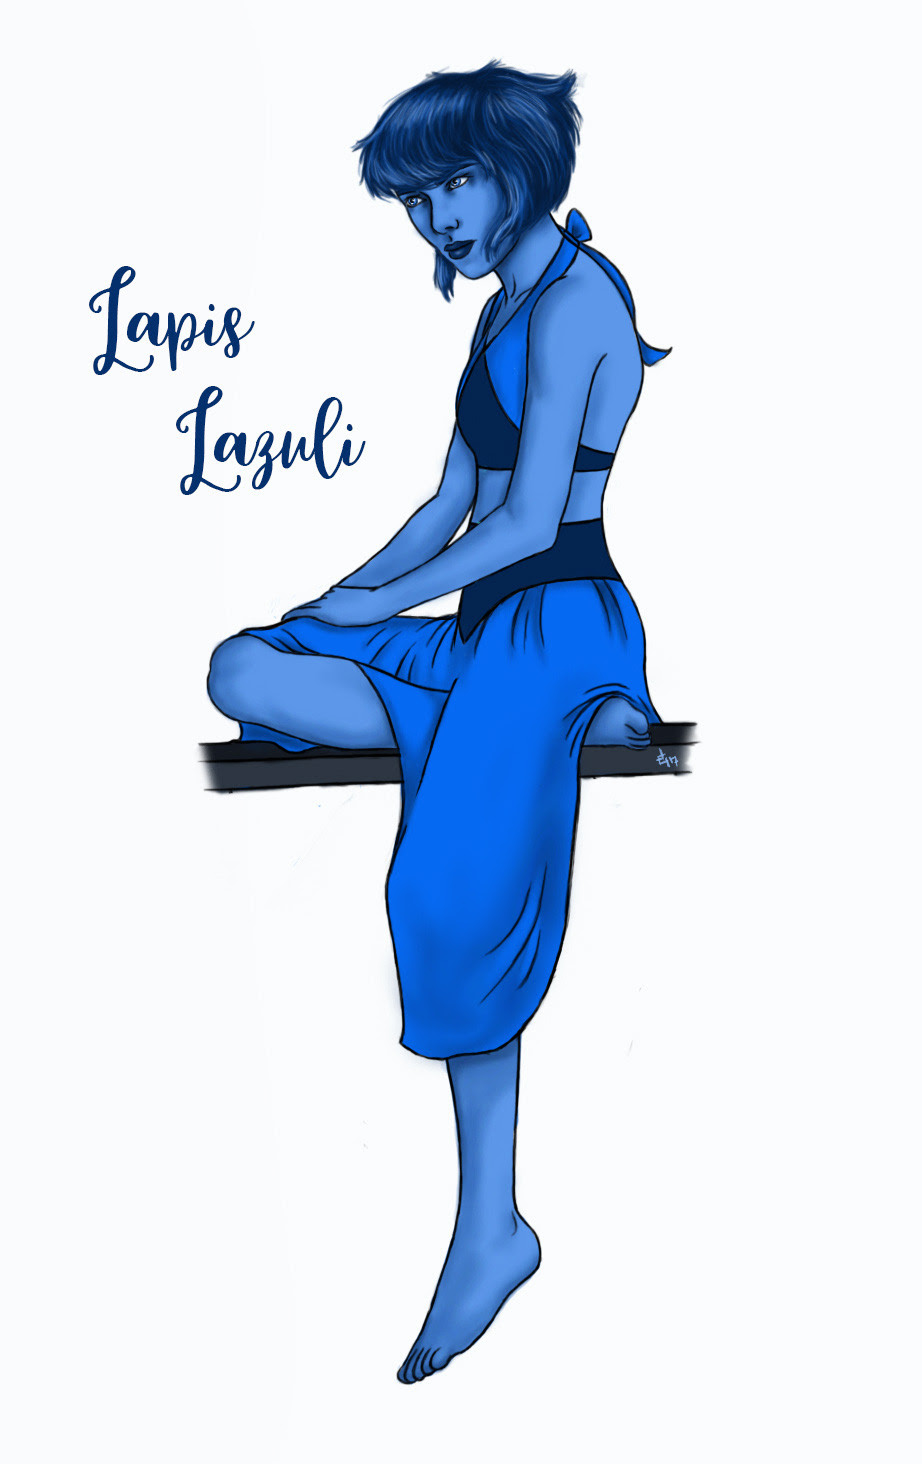 Today's Sketch - Lapis Lazuli My commissions are open. Send me a message or IM me if you're interested.